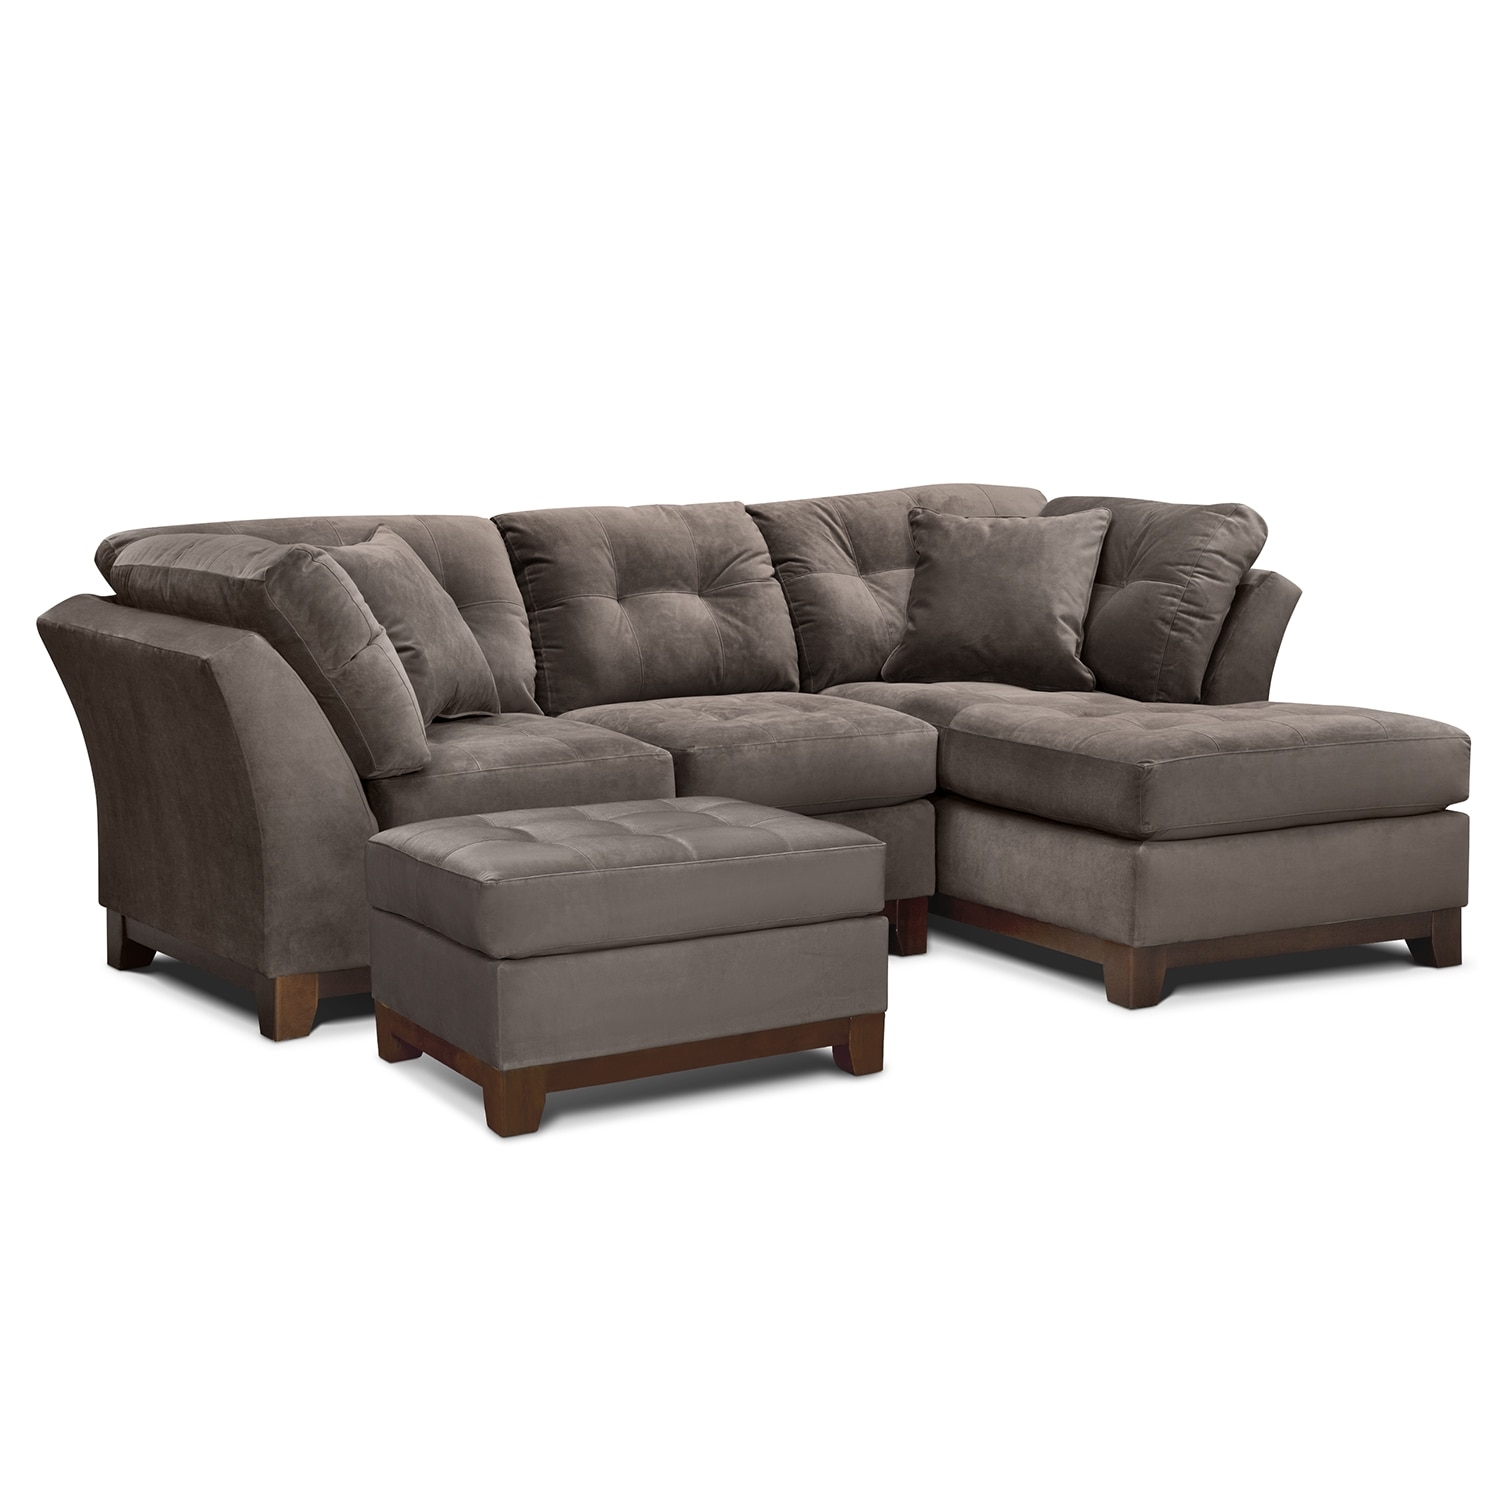 Living Room Furniture - Solace Gray II 2 Pc. Sectional (Alternate Reverse) and Ottoman